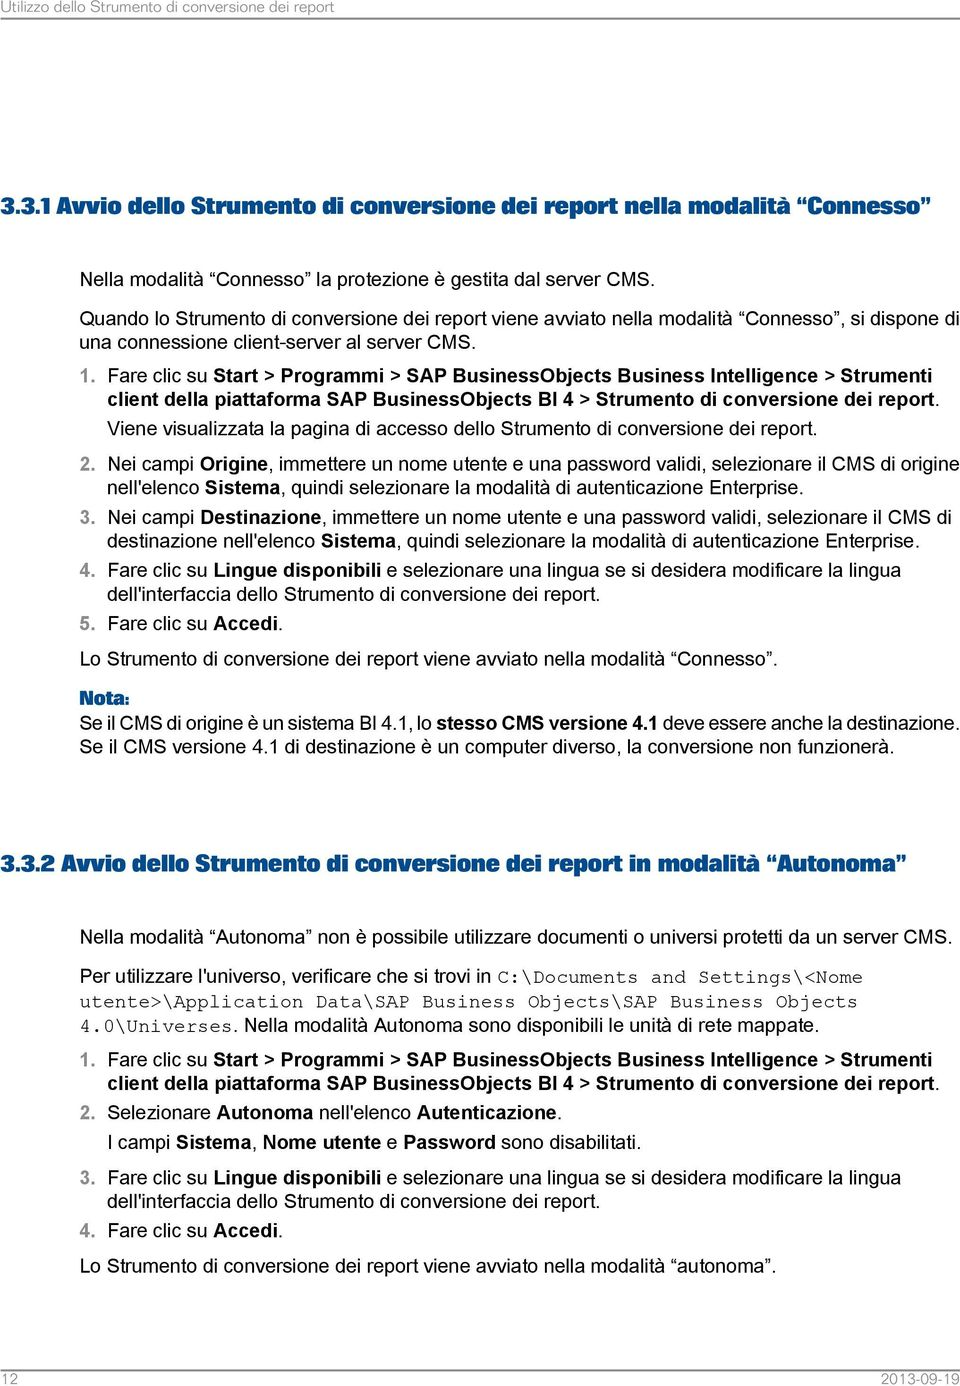 Fare clic su Start > Programmi > SAP BusinessObjects Business Intelligence > Strumenti client della piattaforma SAP BusinessObjects BI 4 > Strumento di conversione dei report.